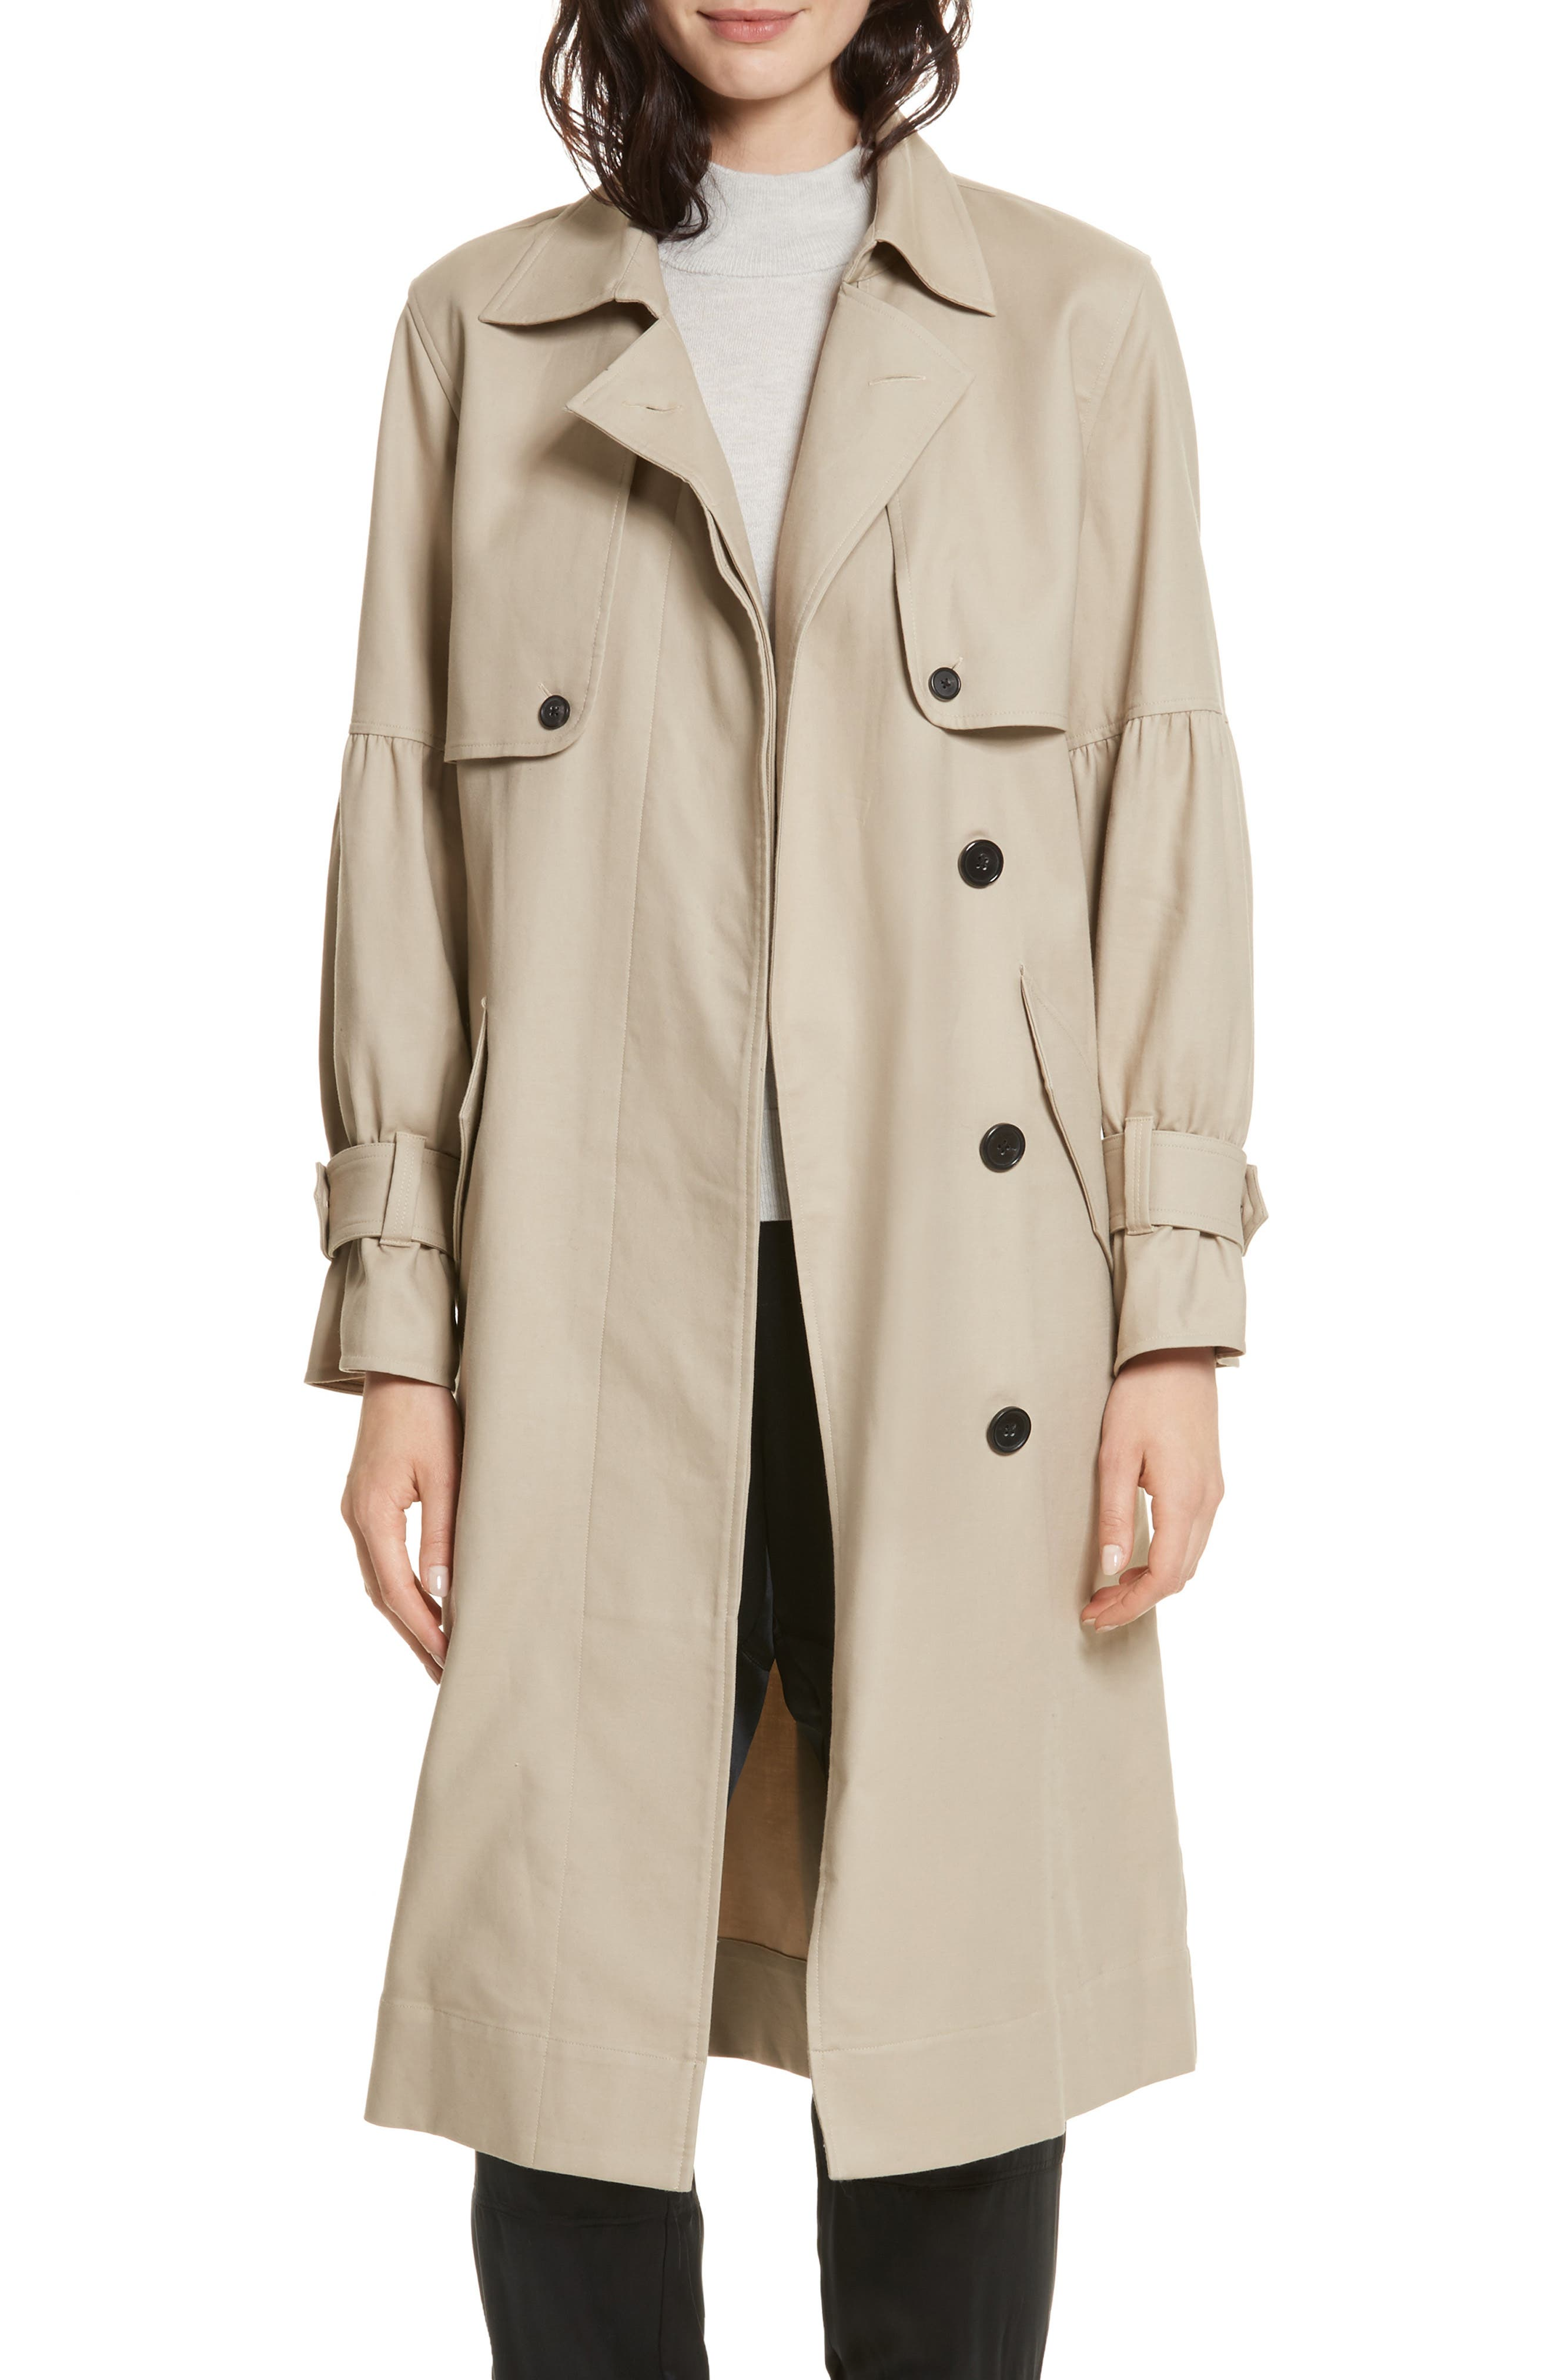 Joie Alwena Cotton Trench Coat